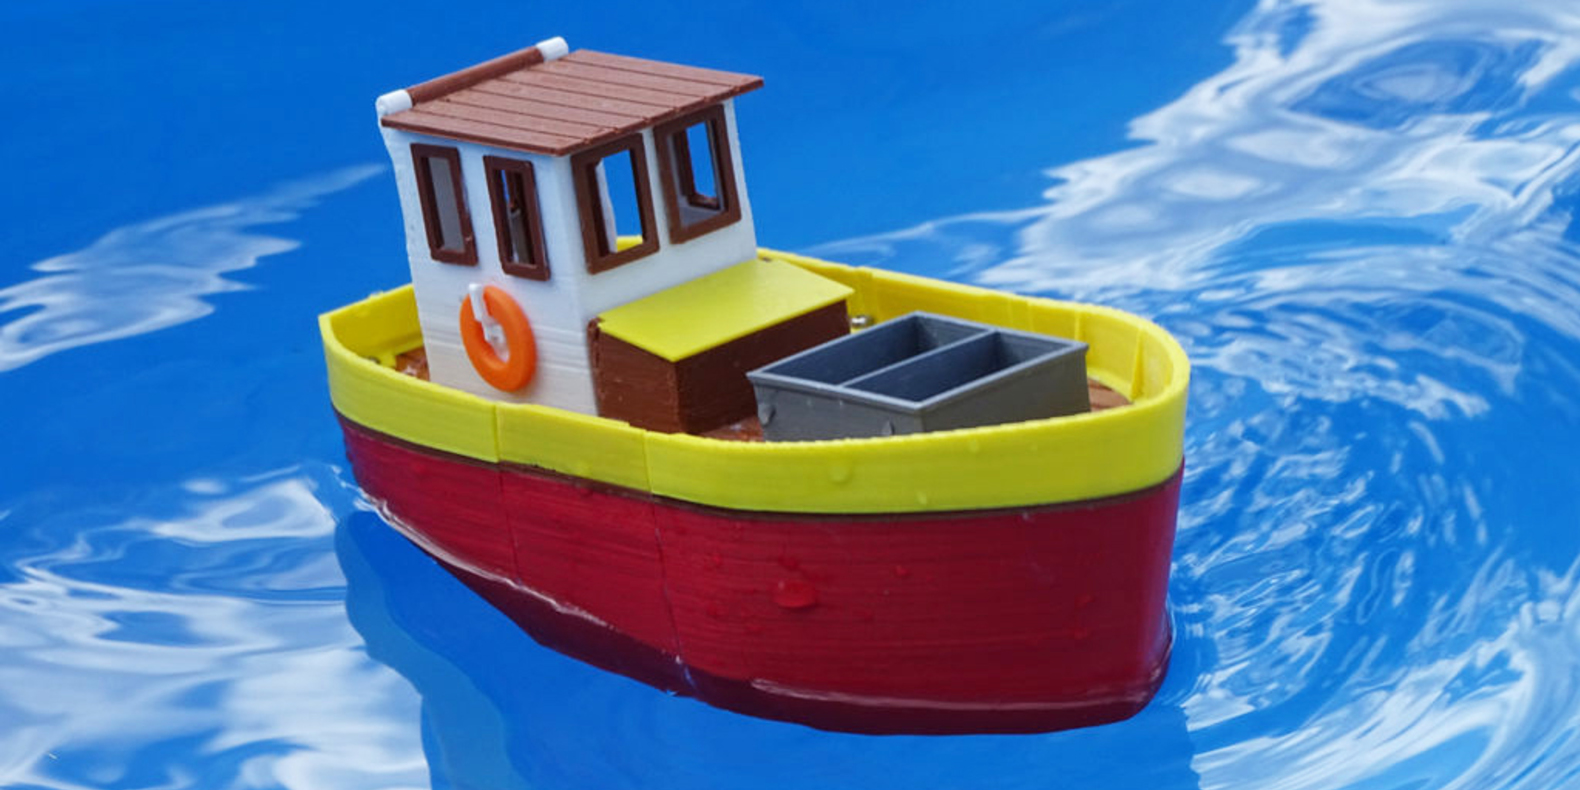 3D model to 3D print of floating toy fishing boat for children